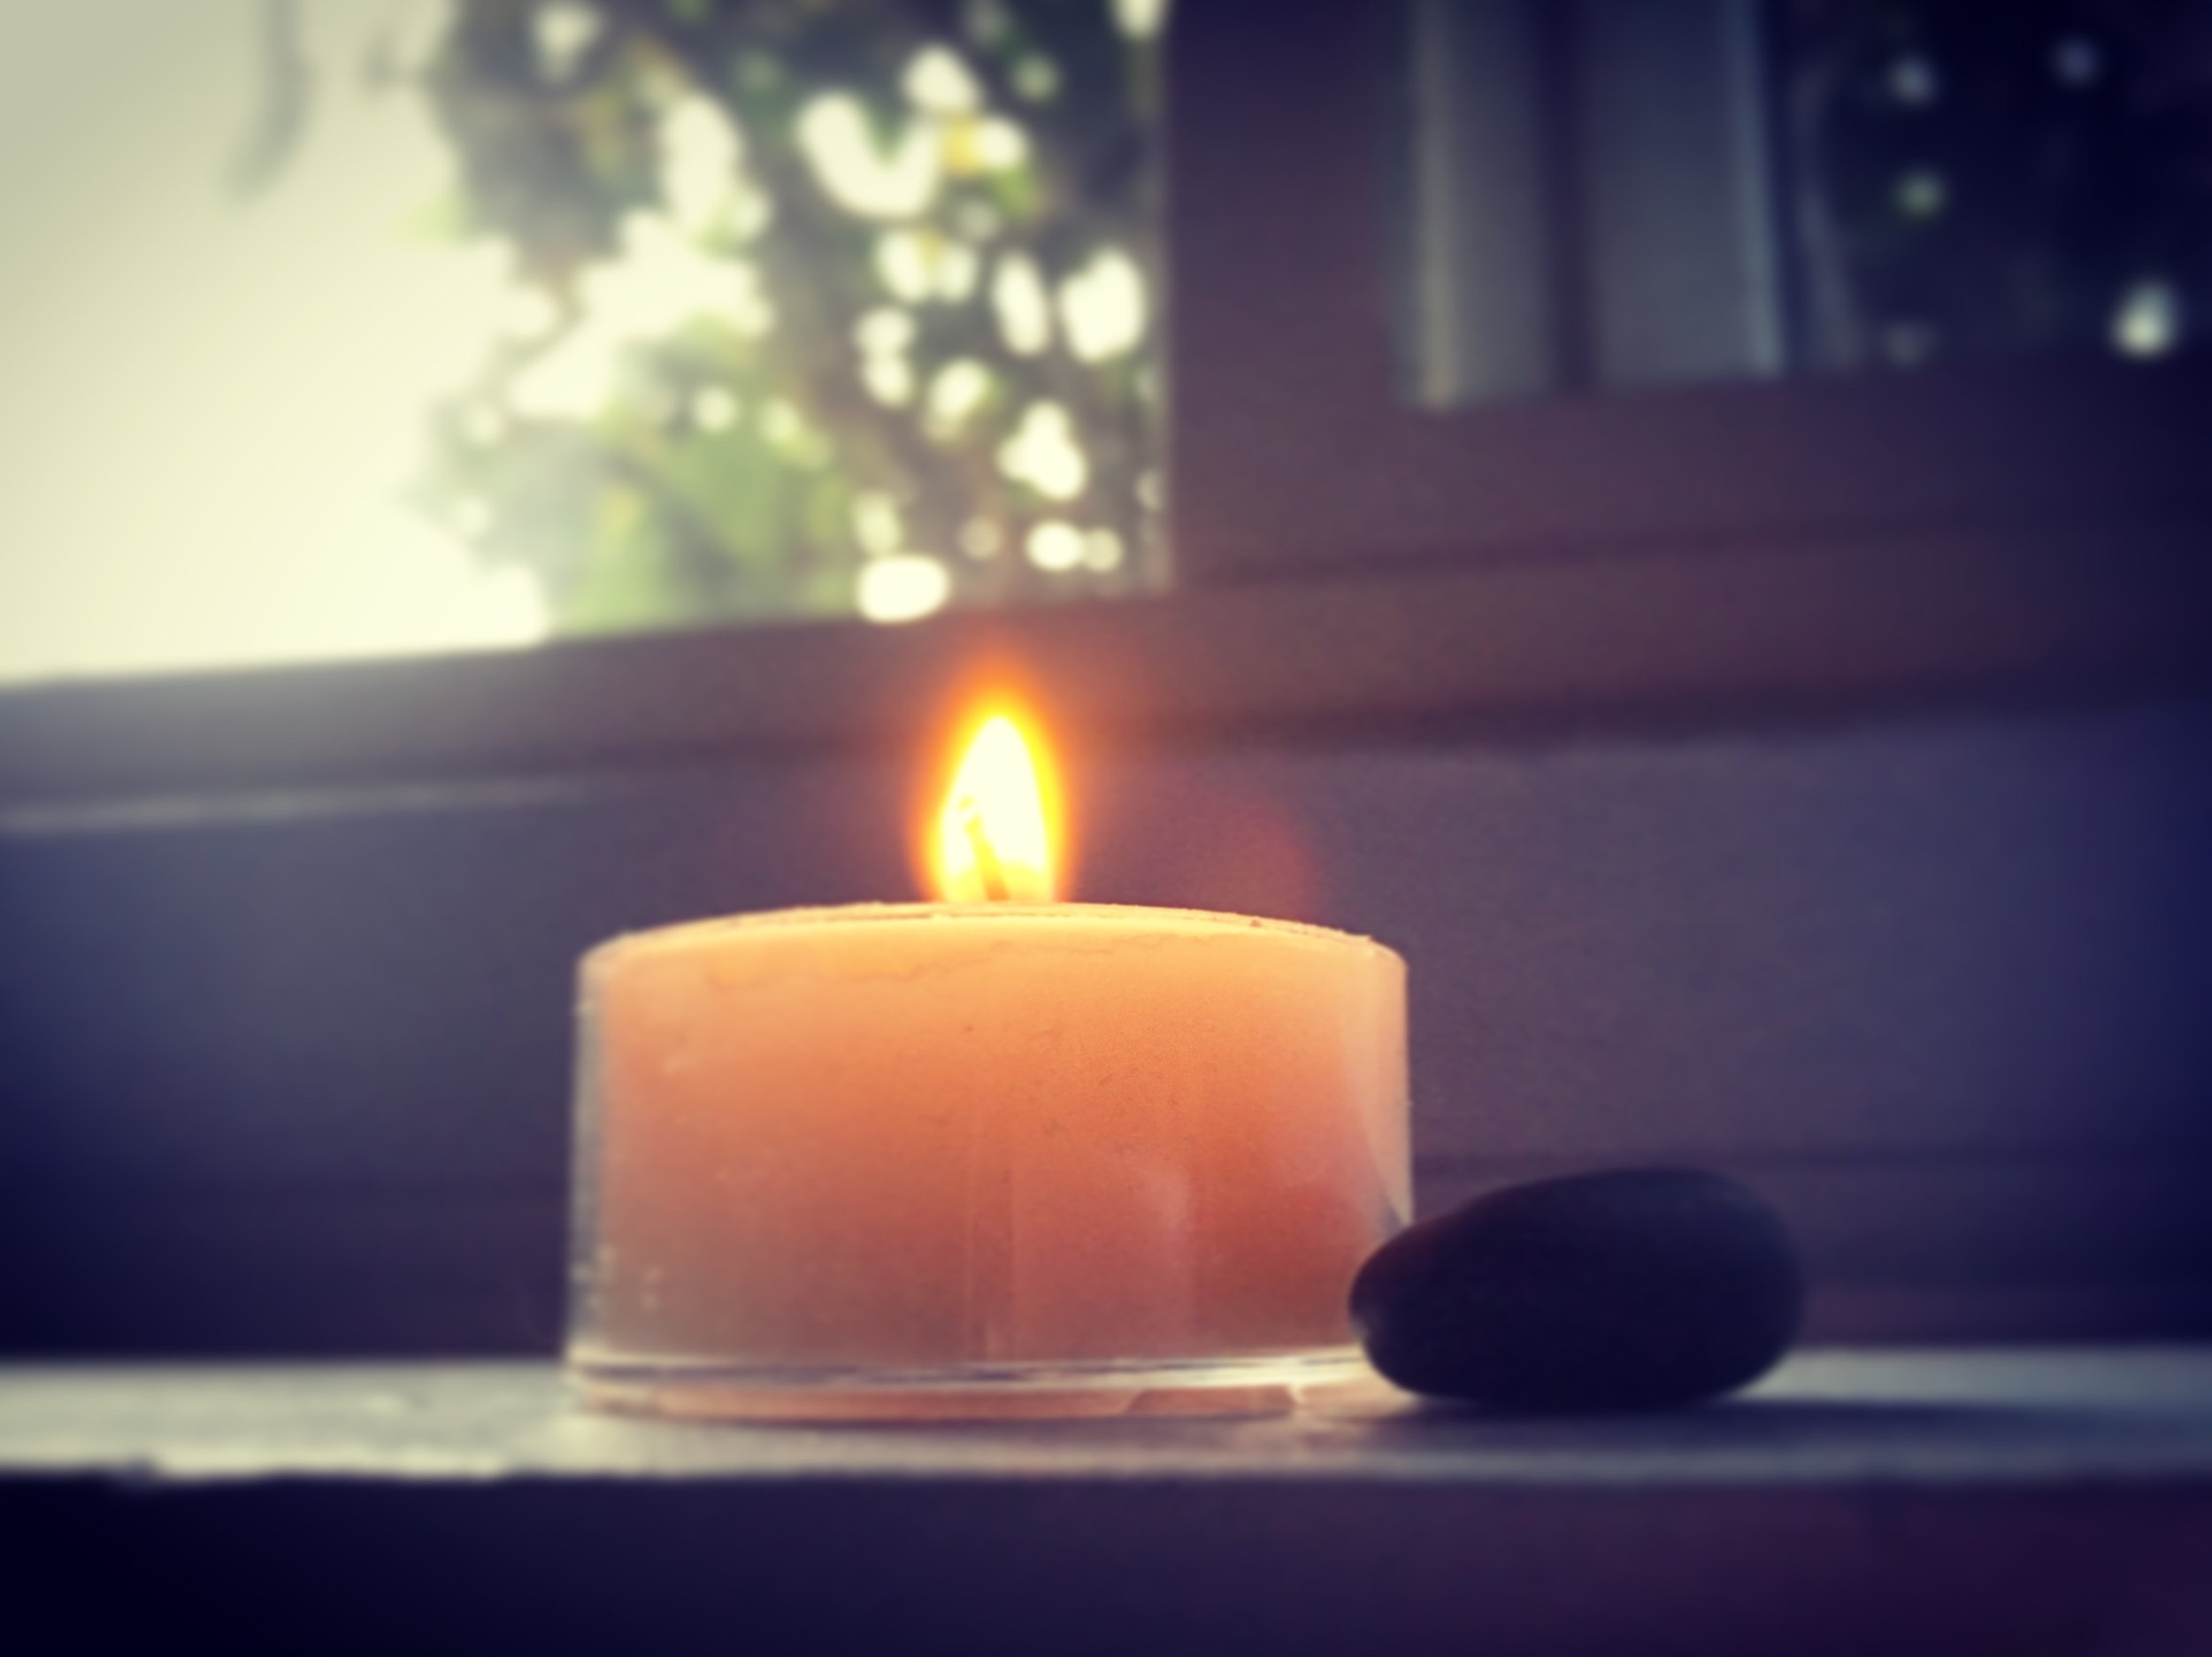 You may wish to gaze at the candle flame as you listen to the recording.